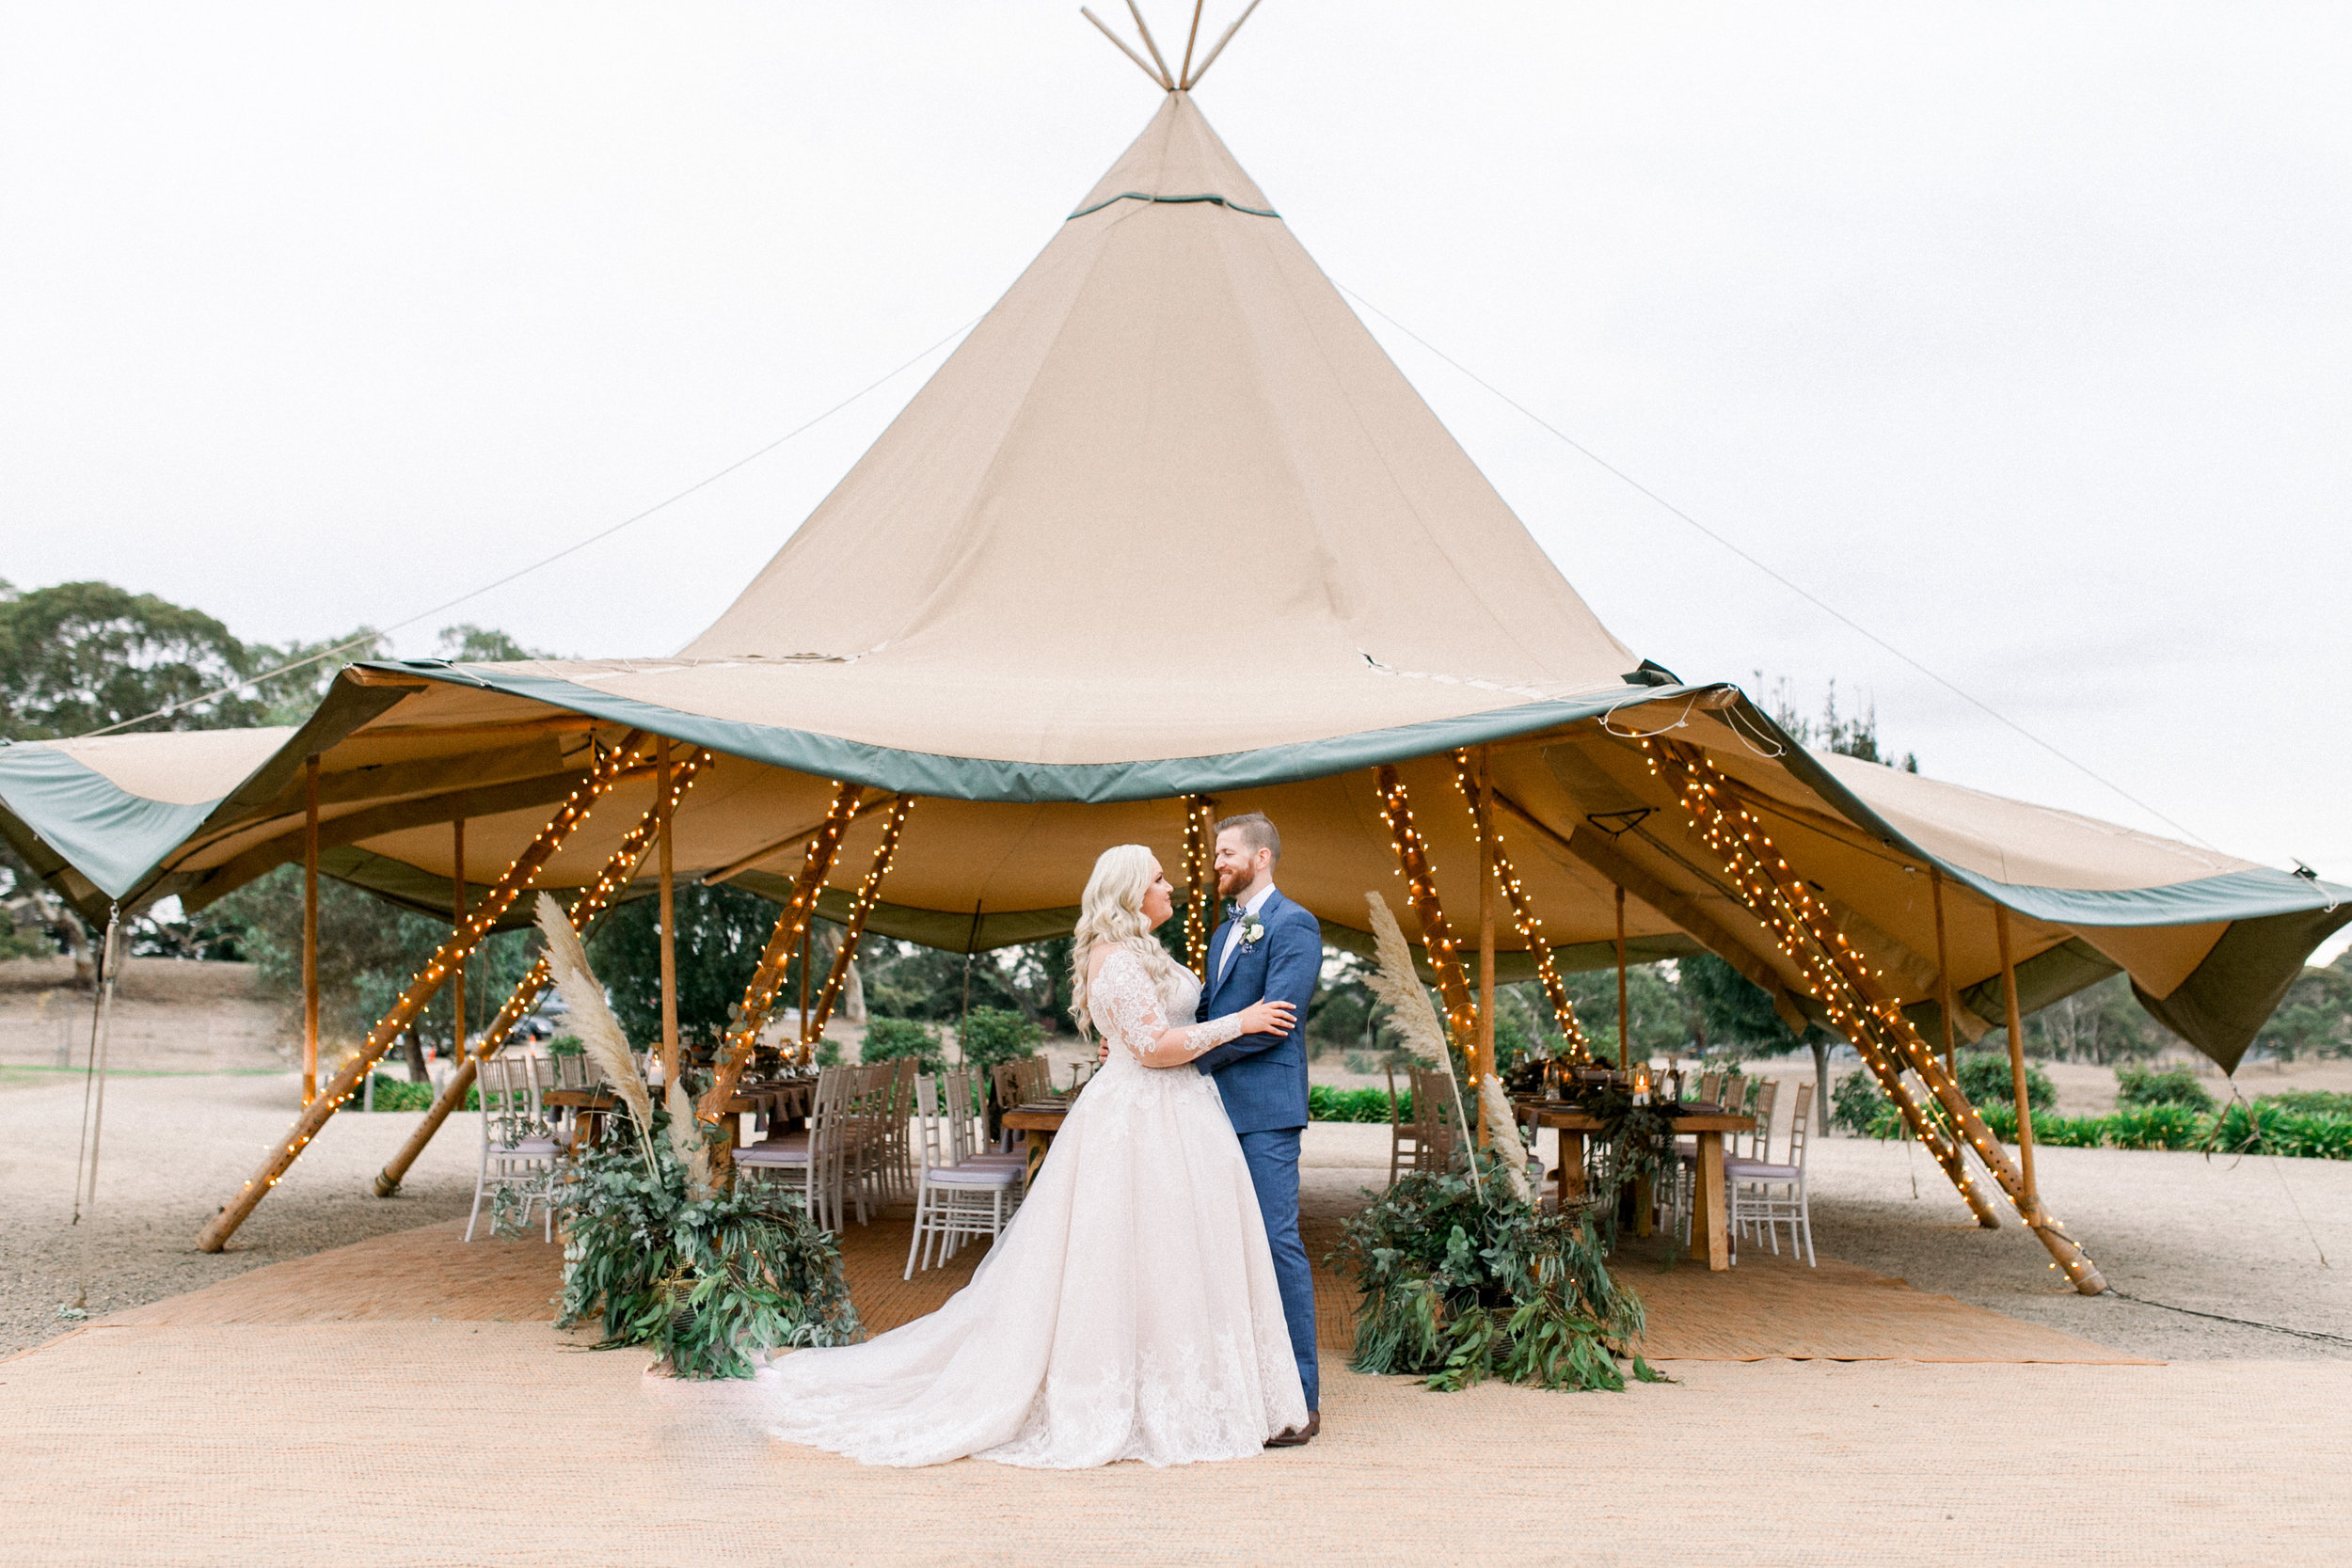 Renee & Tristan on their wedding day with Single Tipi